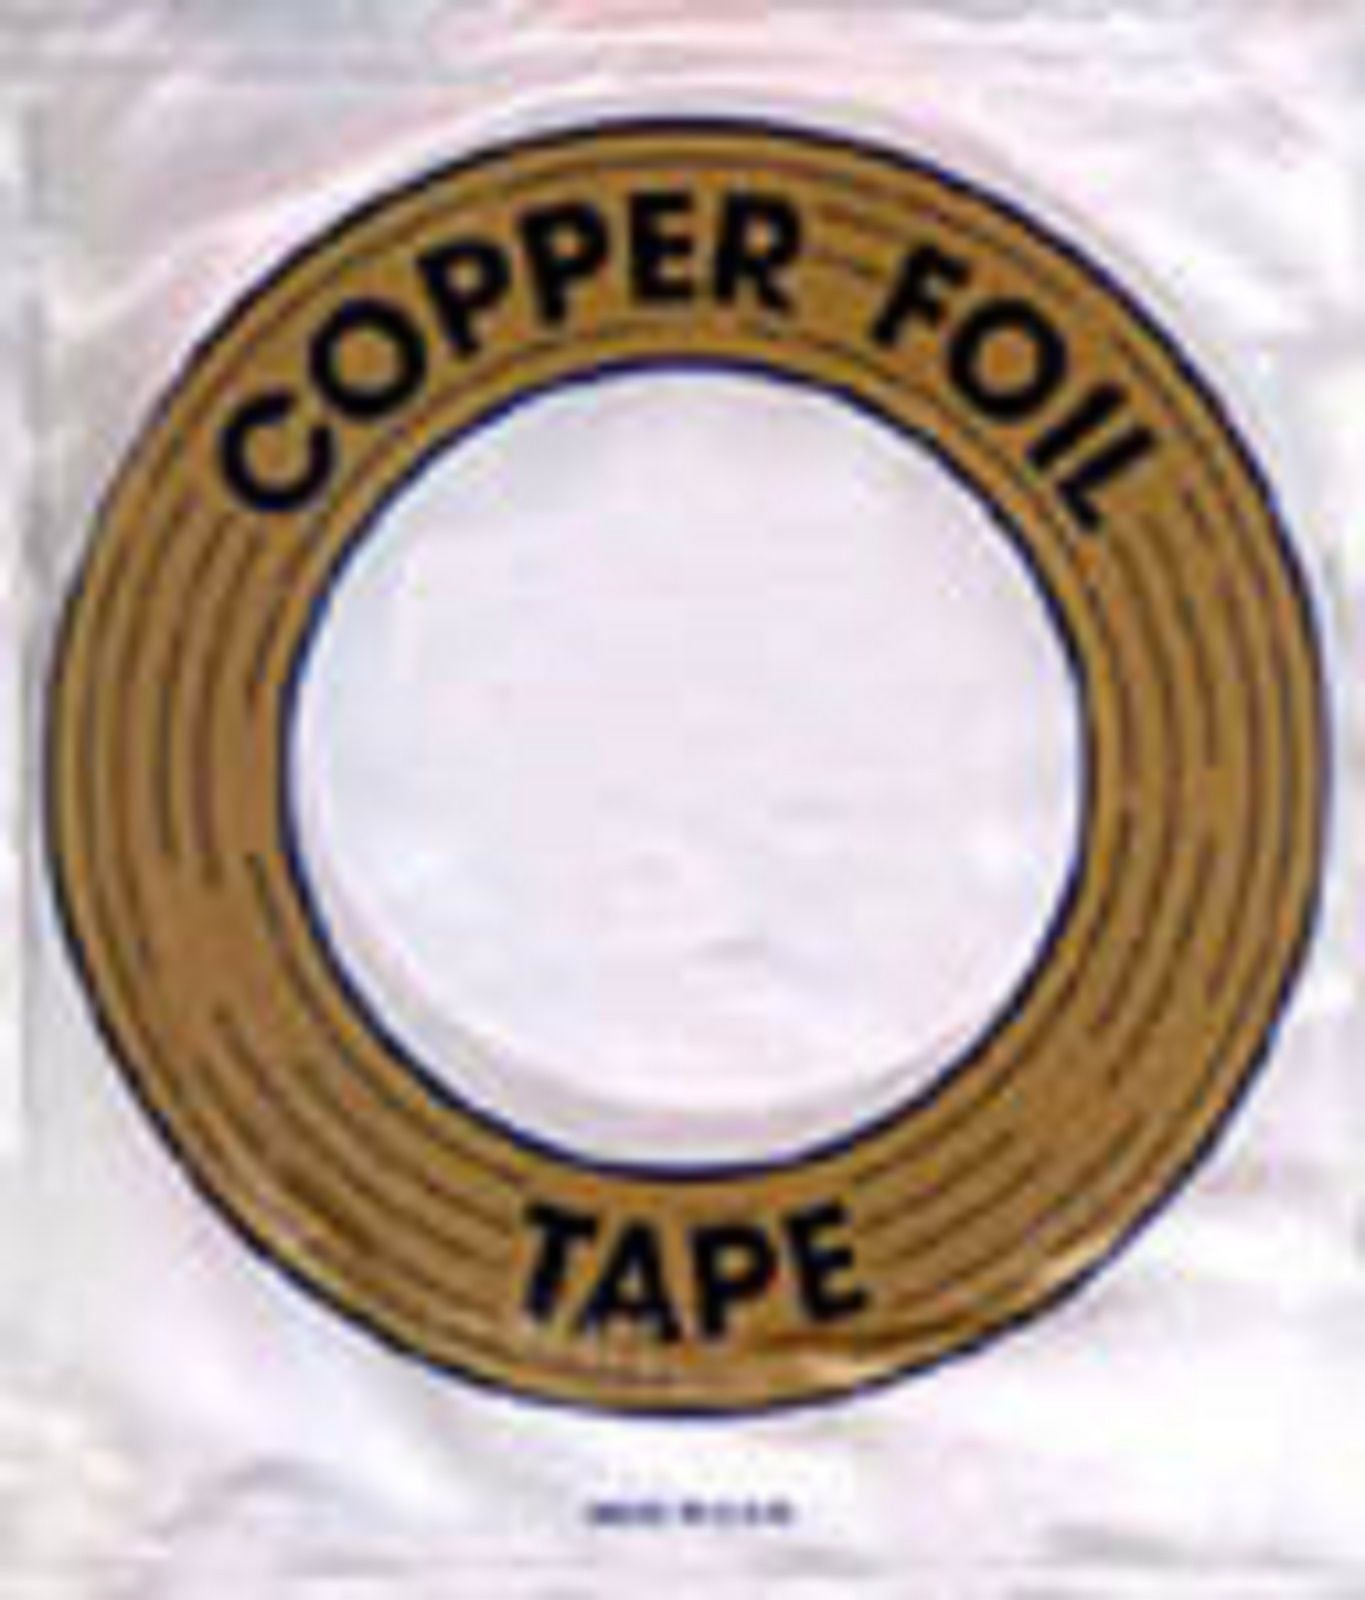 NEW 3 Rolls Venture Copper Tape 3//16 Stained Glass Foil